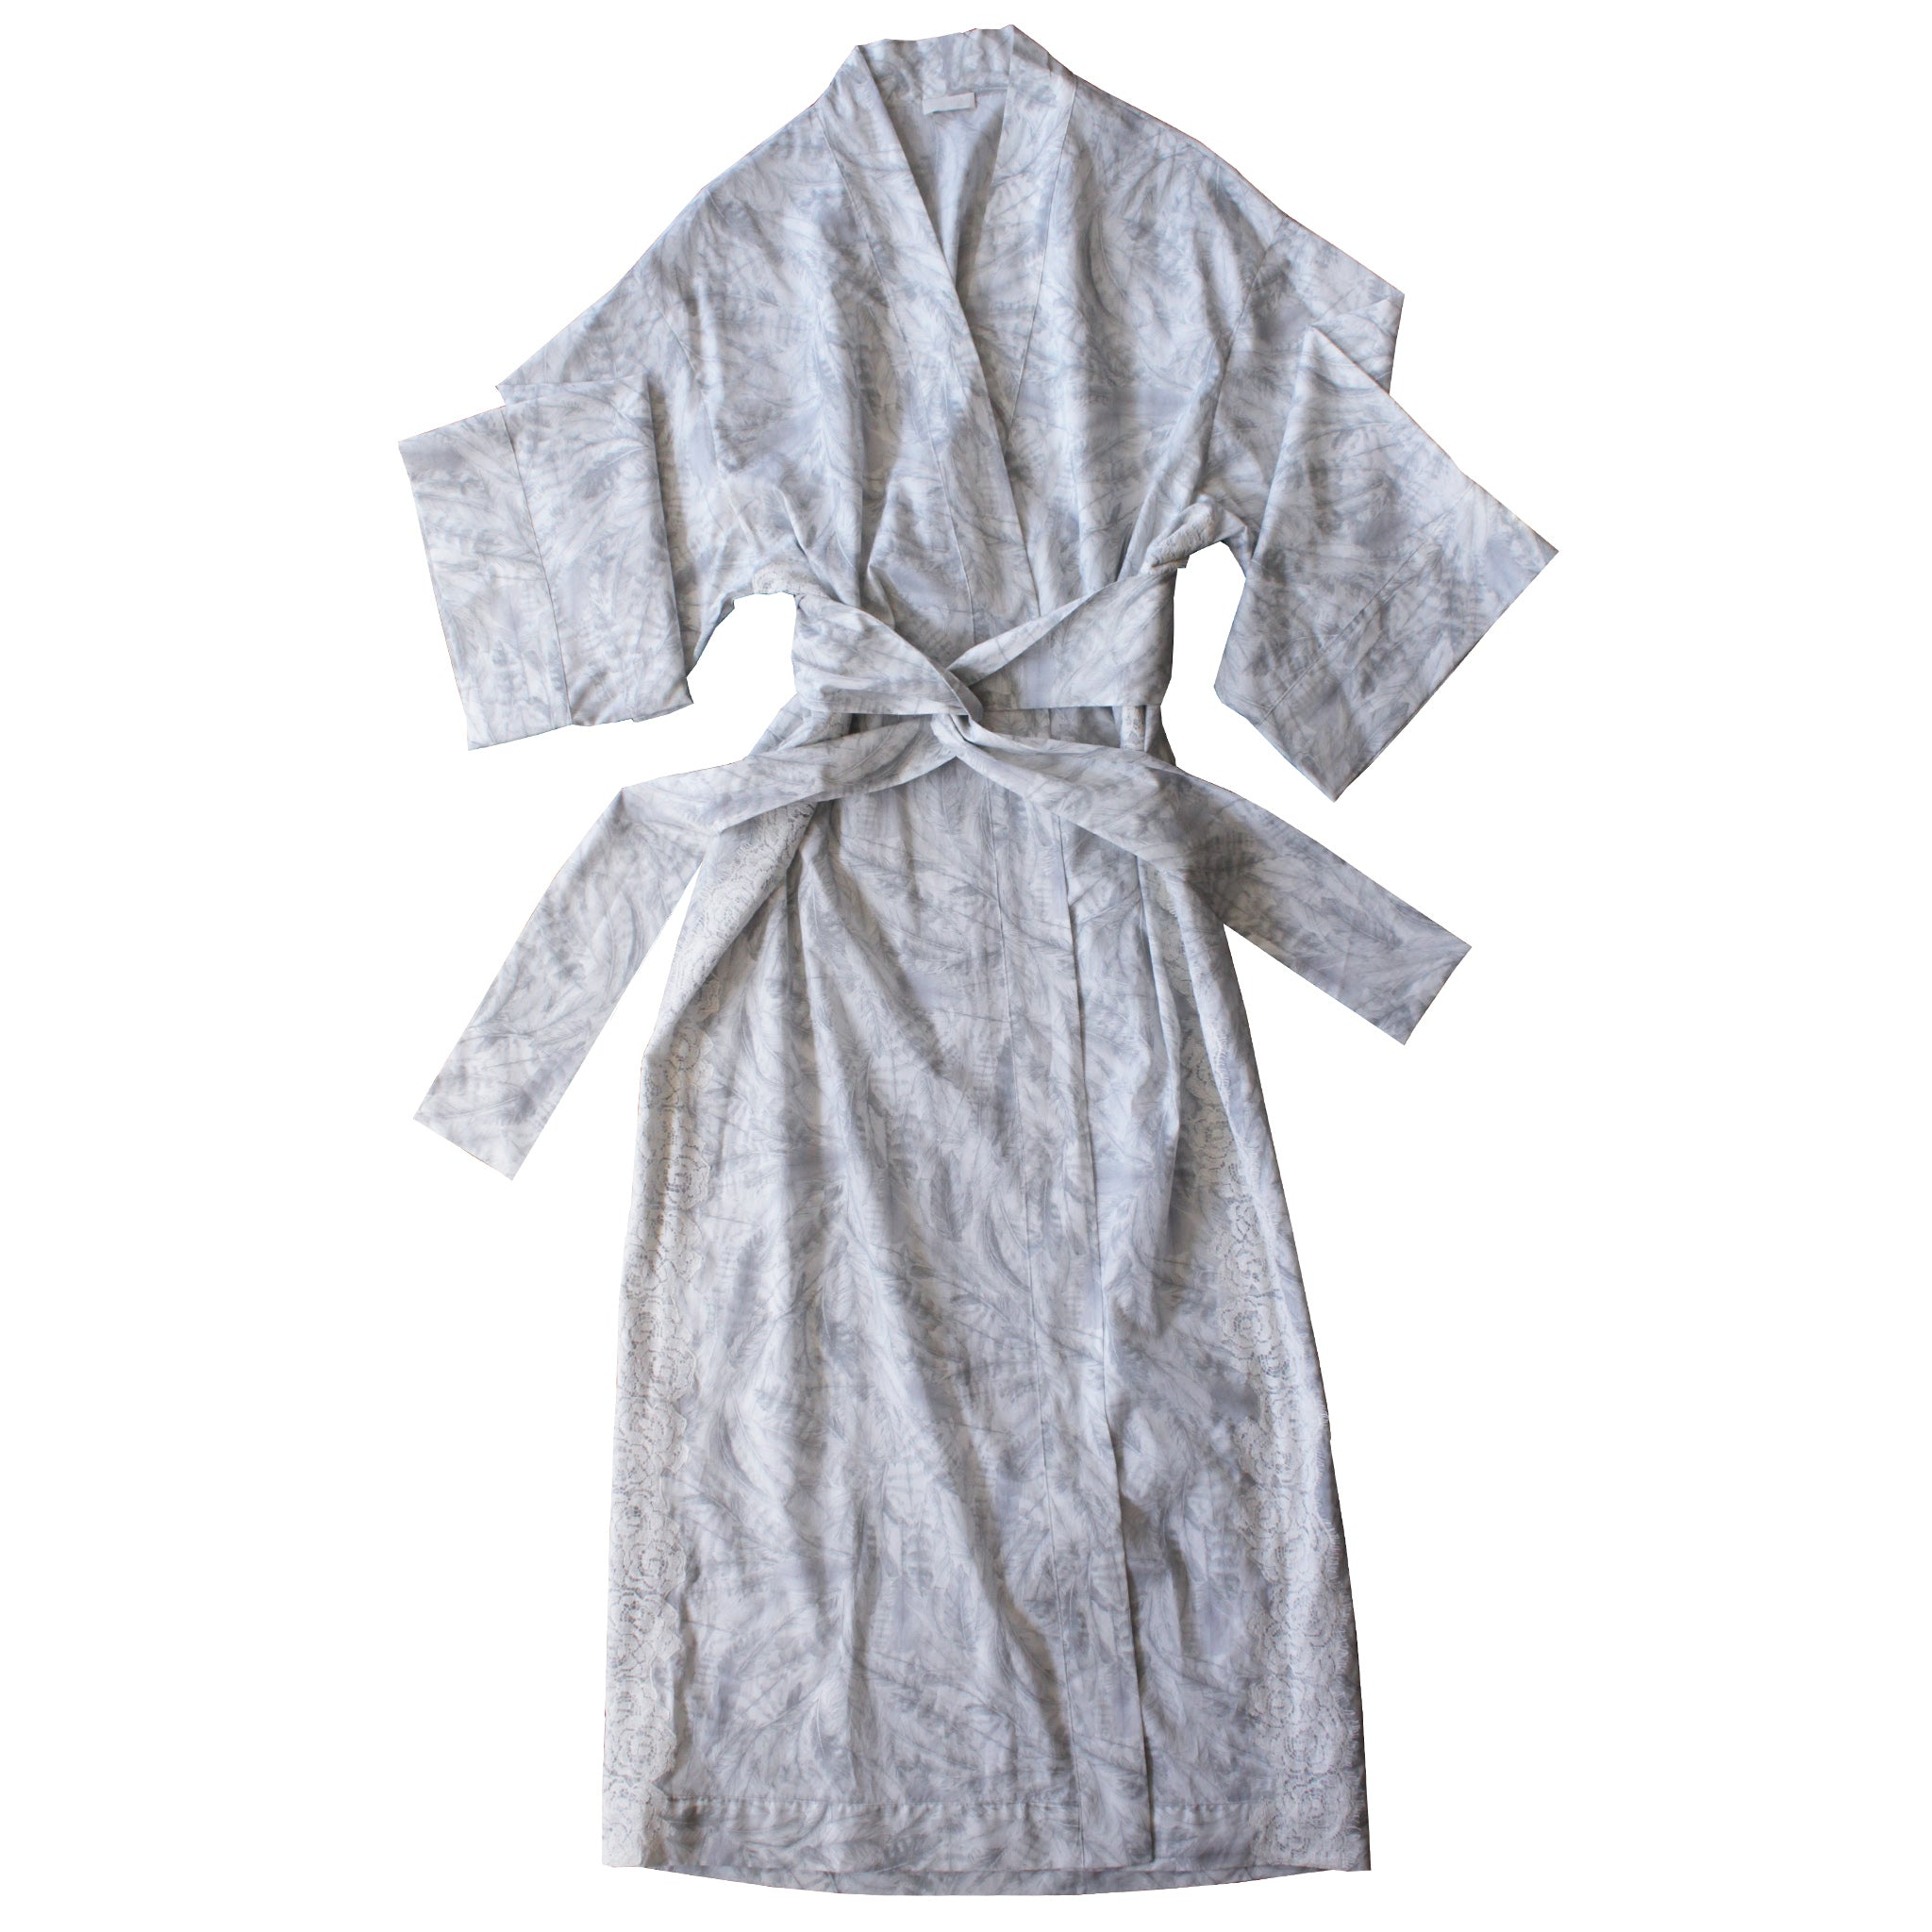 Asteria Kimono Robe in Liberty of London Pale Feathers Cotton with Lace